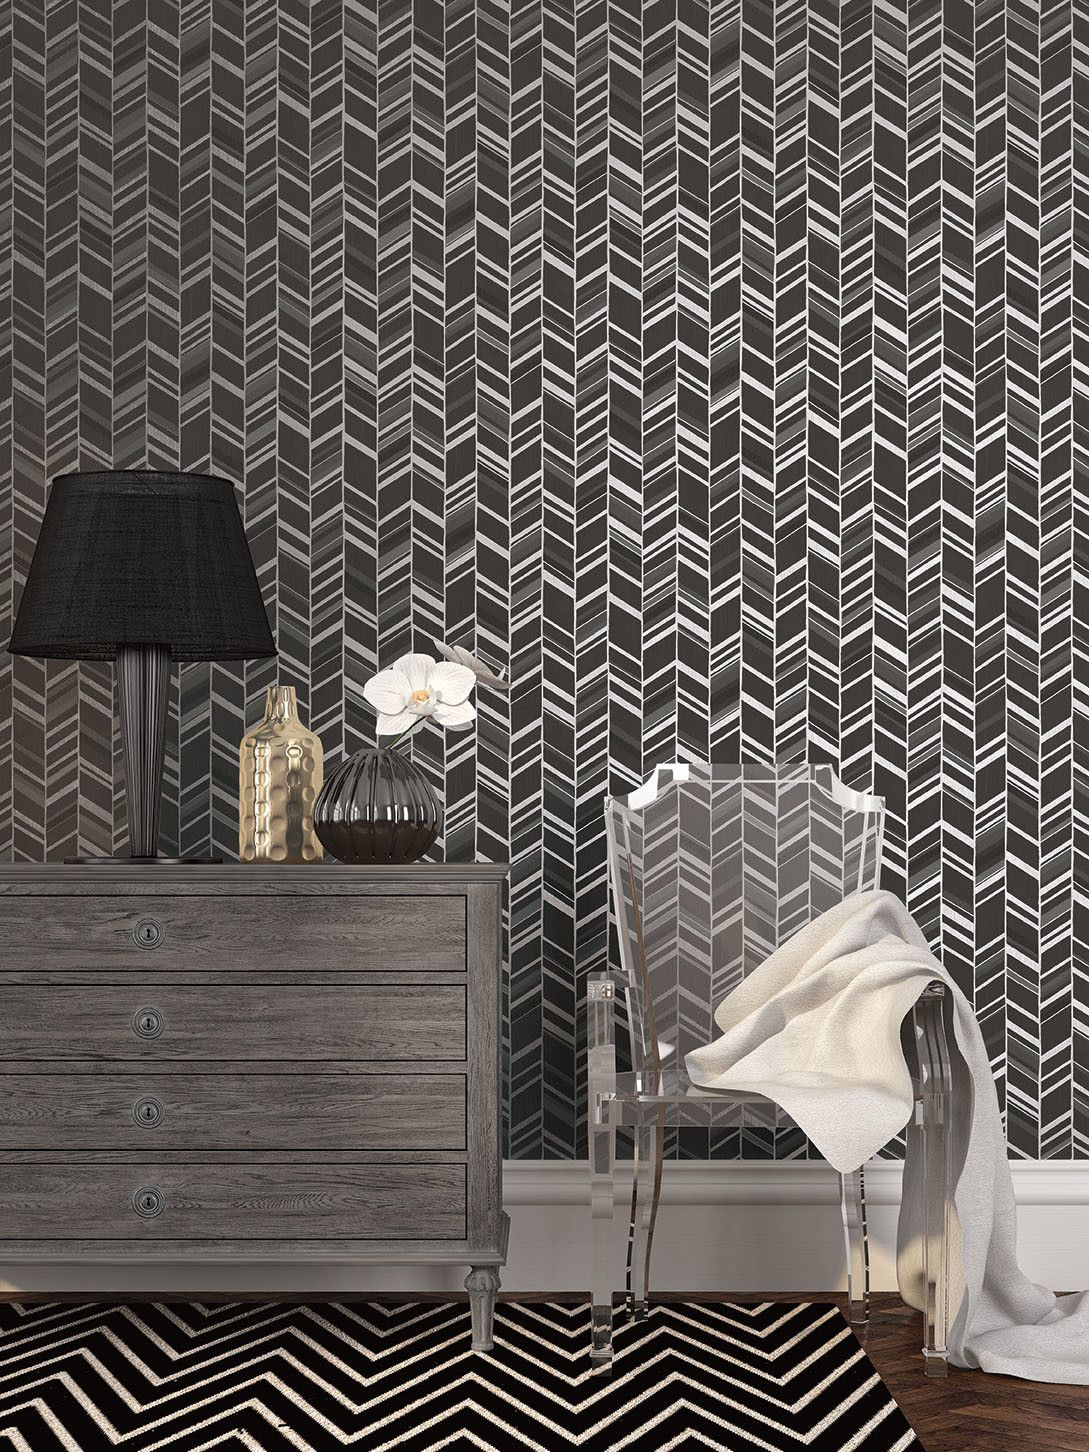 Stand Out From The Crowd With This Black And Silver Metallic